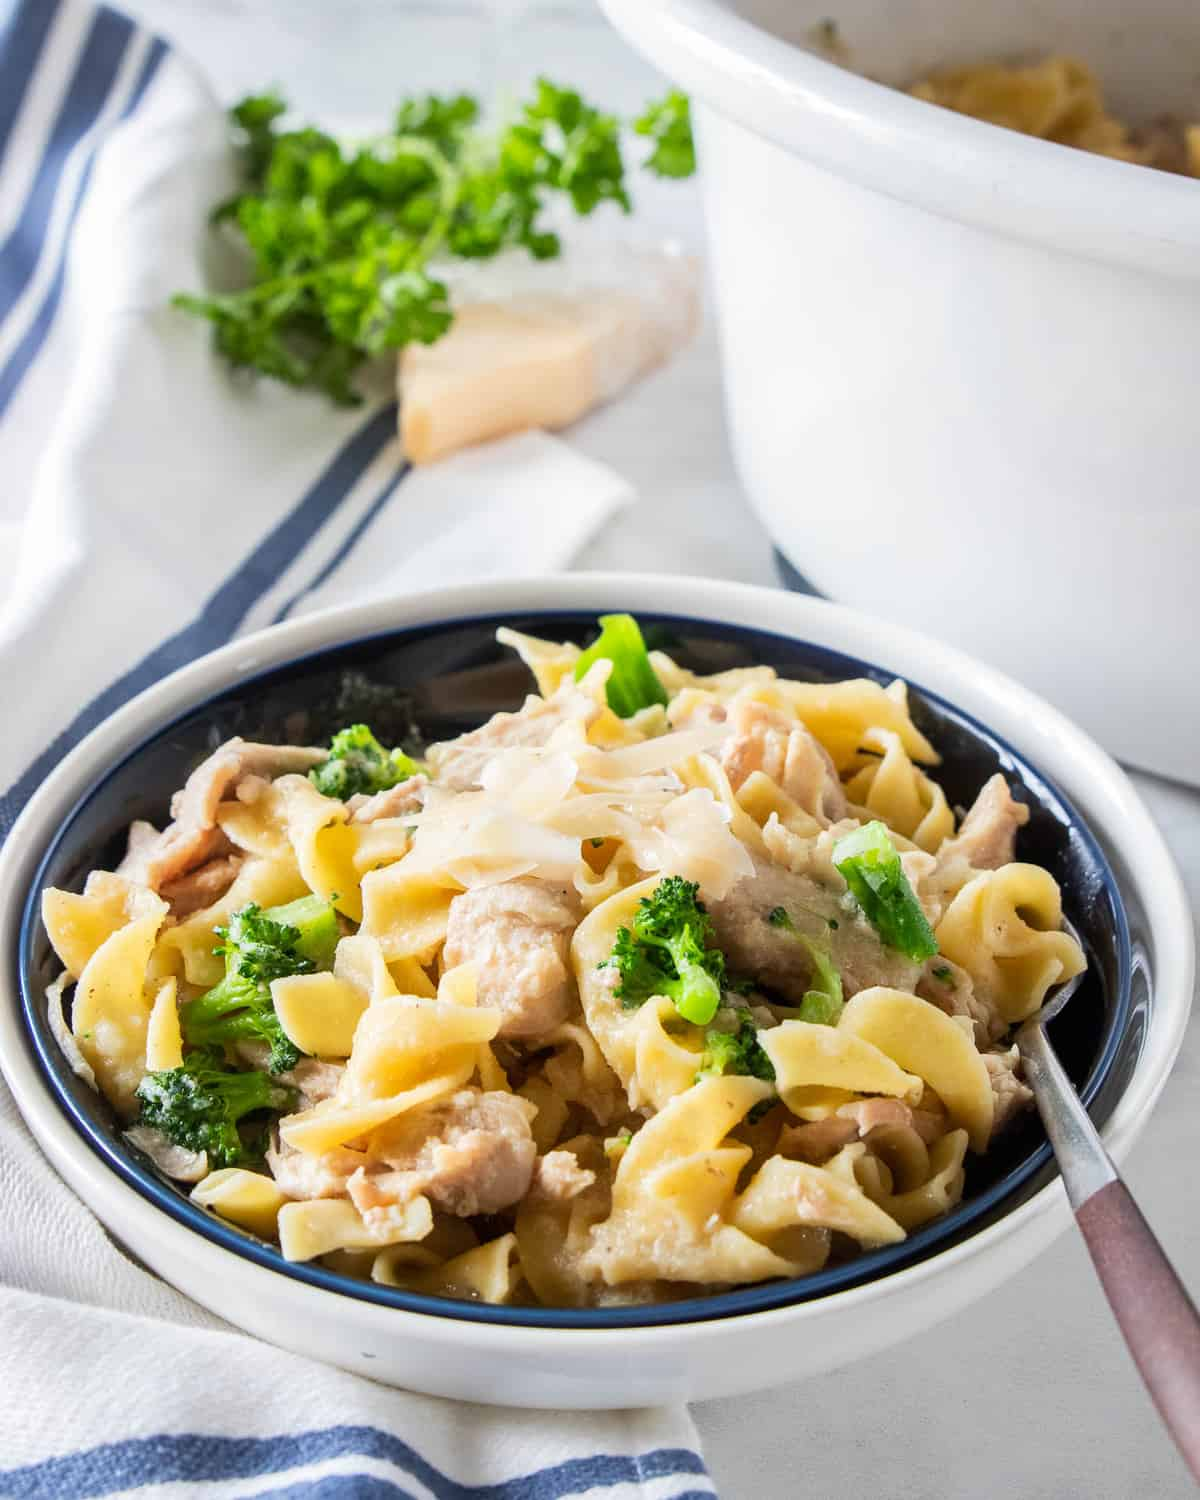 Crockpot chicken and noodles in a serving bowl with a fork.